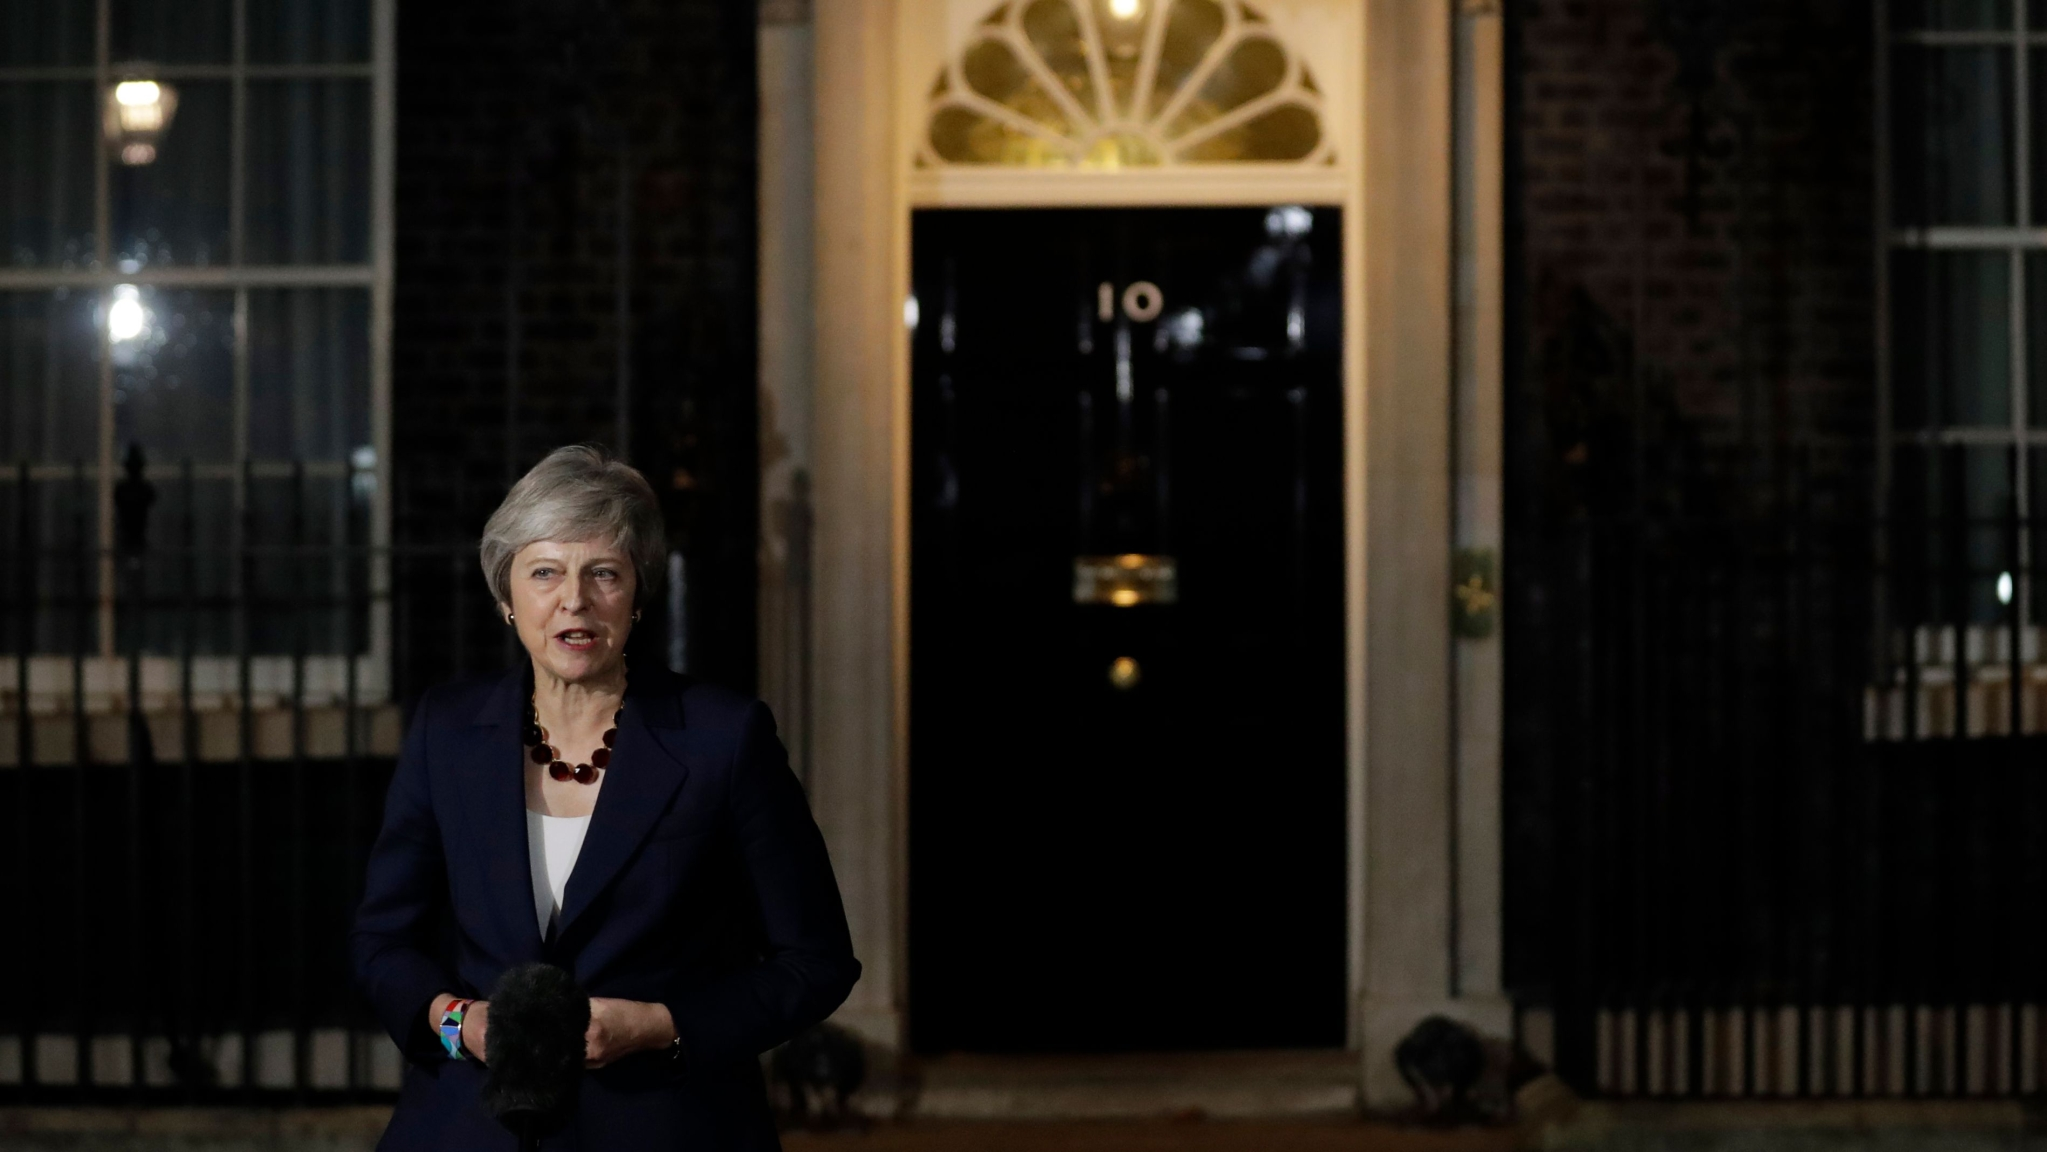 After Intense Wrangling, UK Backs A Brexit Deal, But What's Next?